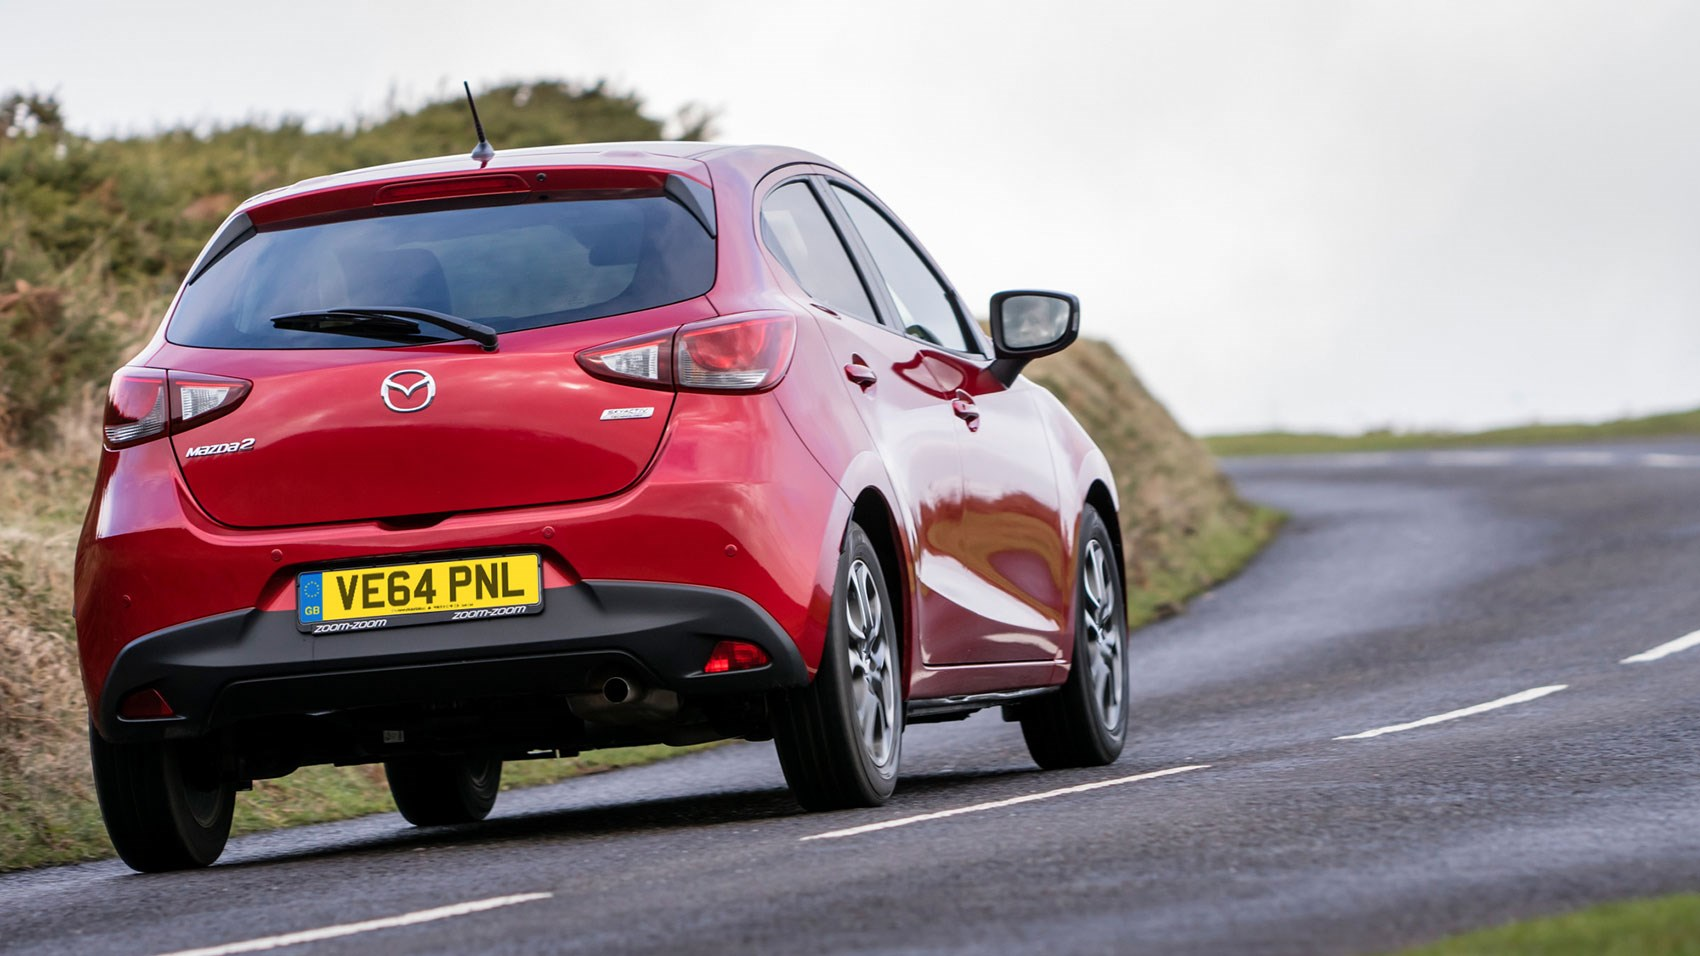 hight resolution of  we tested the mazda 2 in 1 5 petrol guise